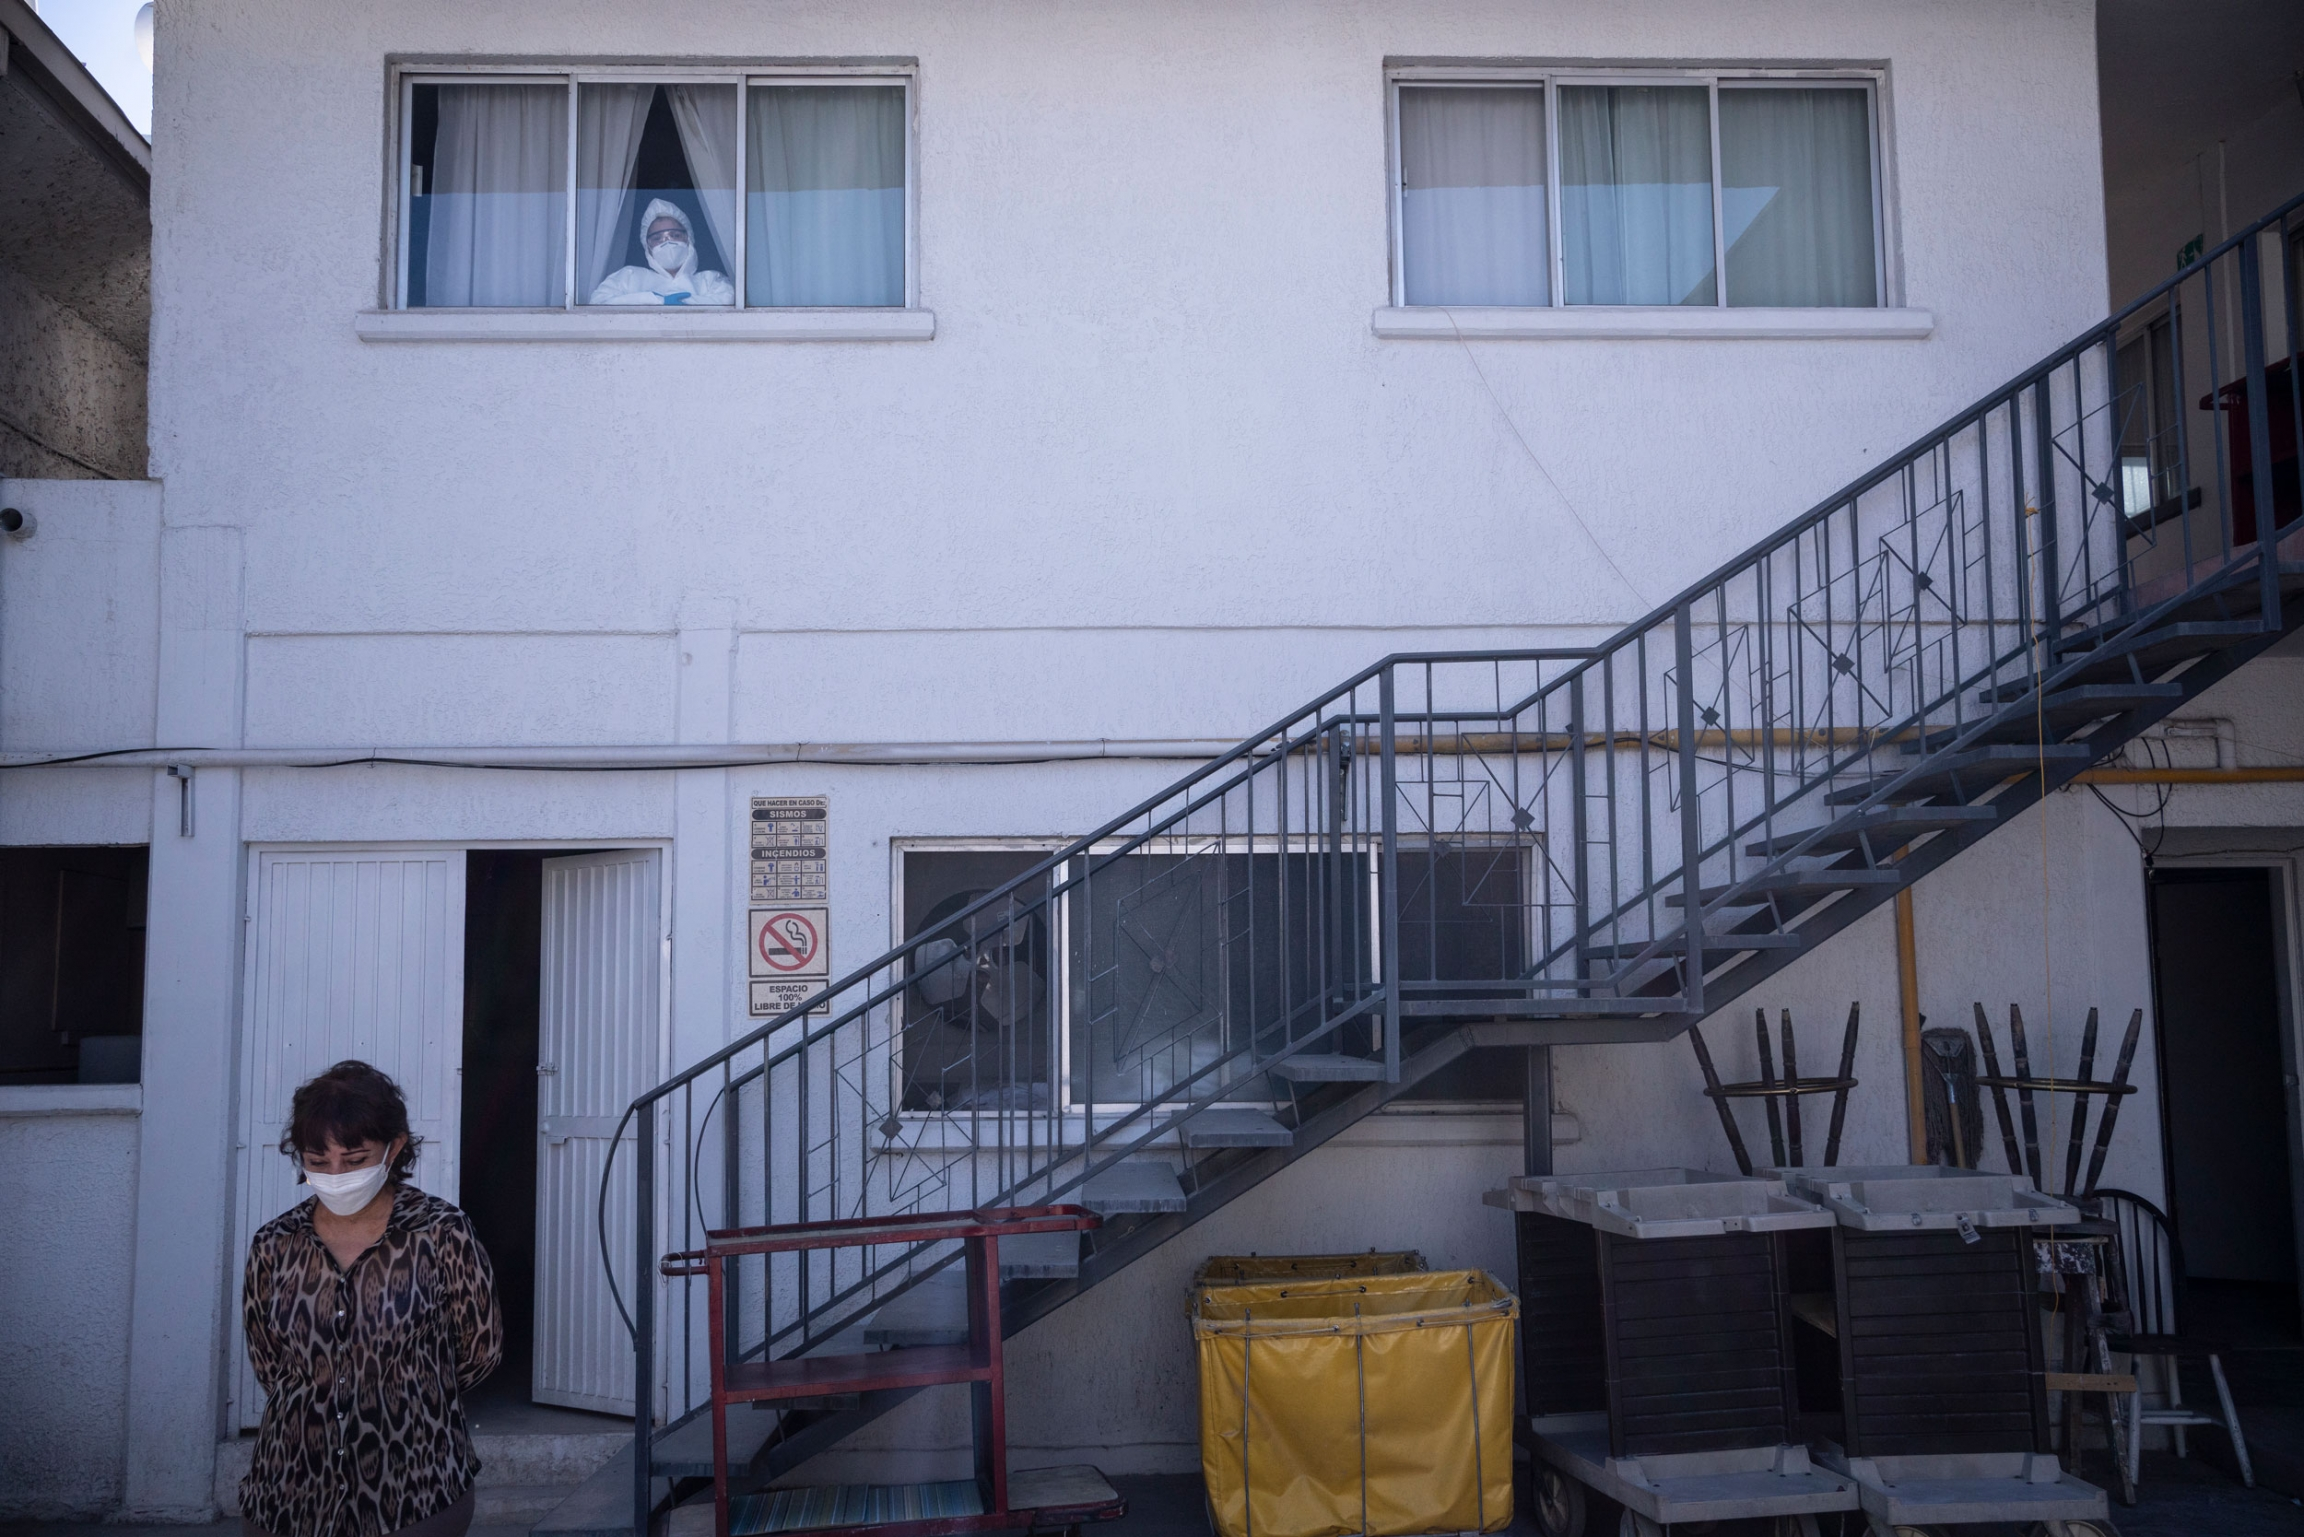 A doctor is shown wearing protective medical clothing and looking through the window on the second floor of a hotel.